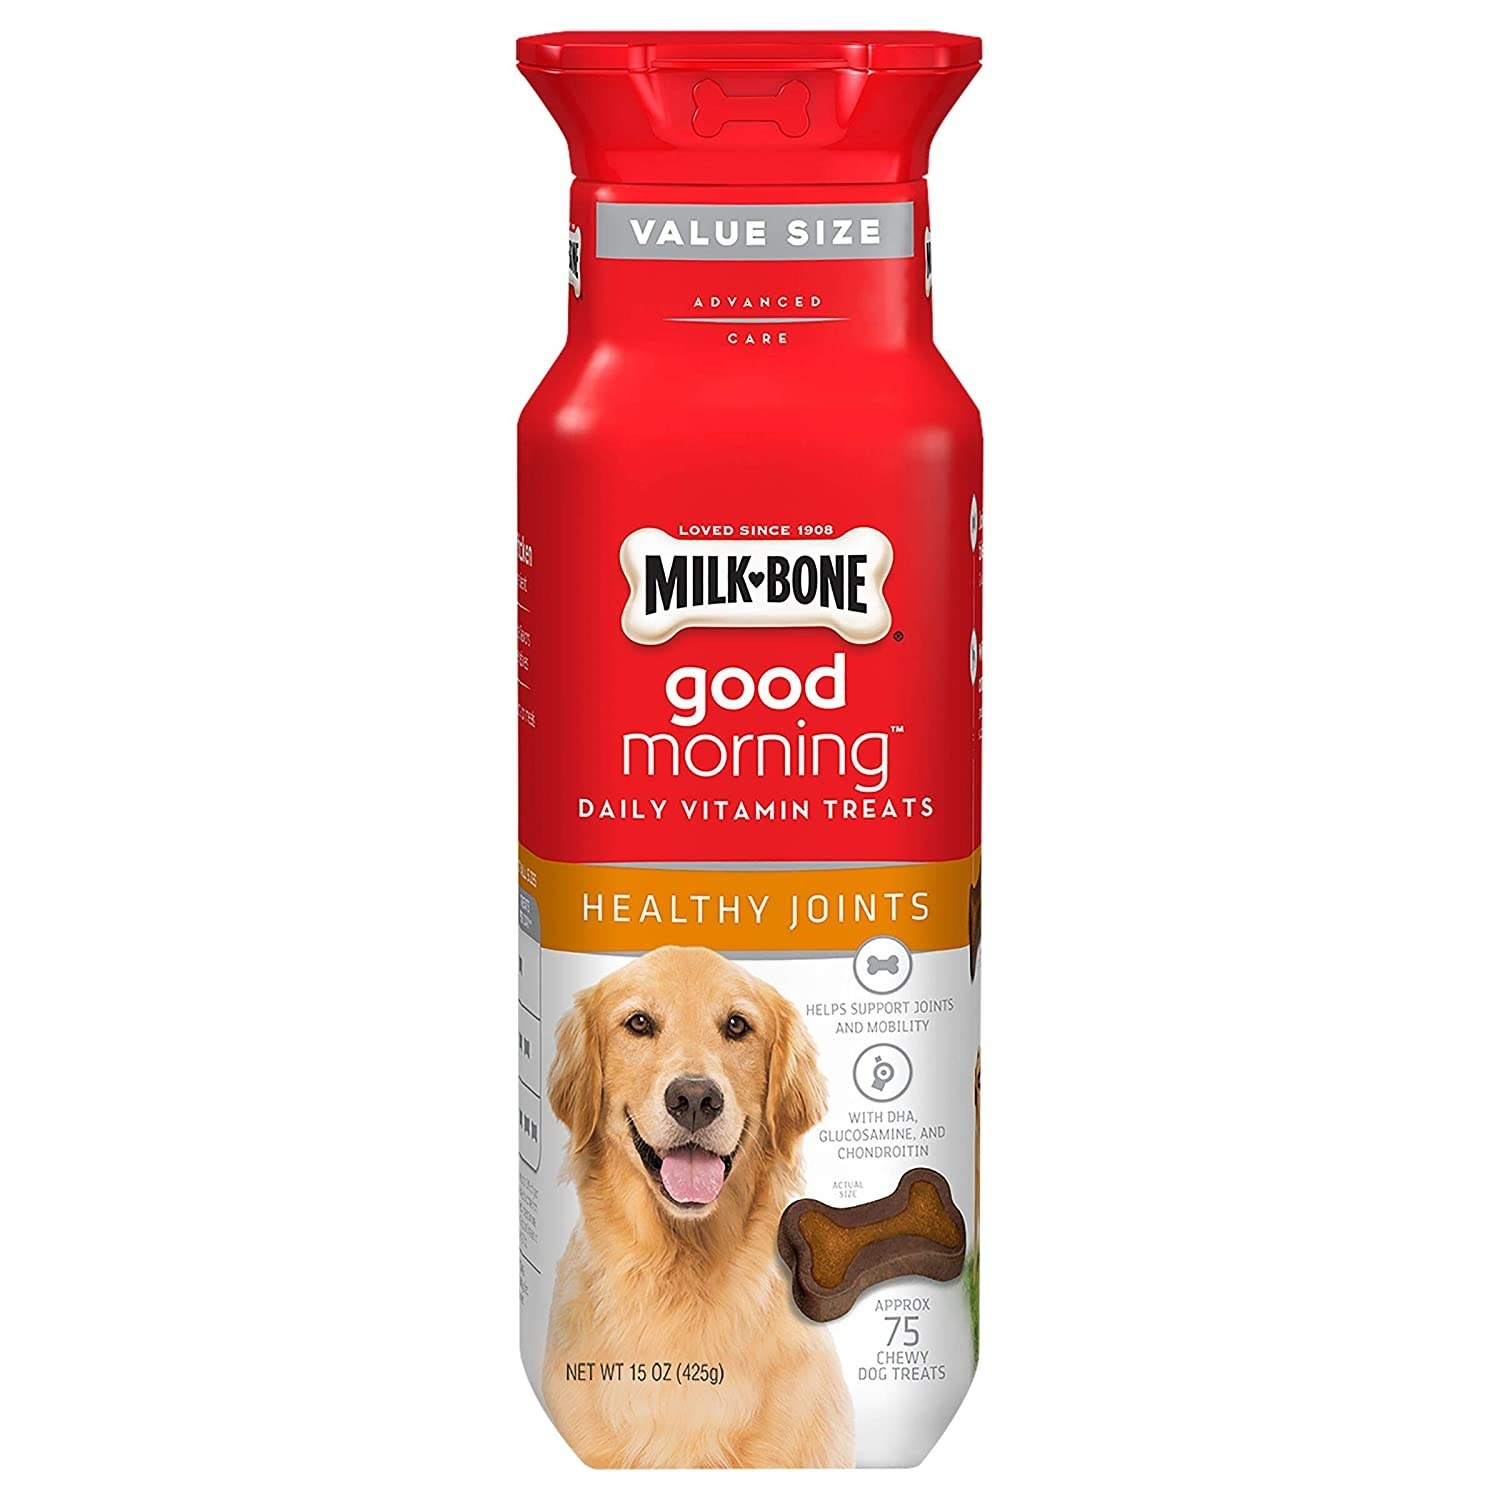 Product made with real chicken and nutrients to support your dog's mobility